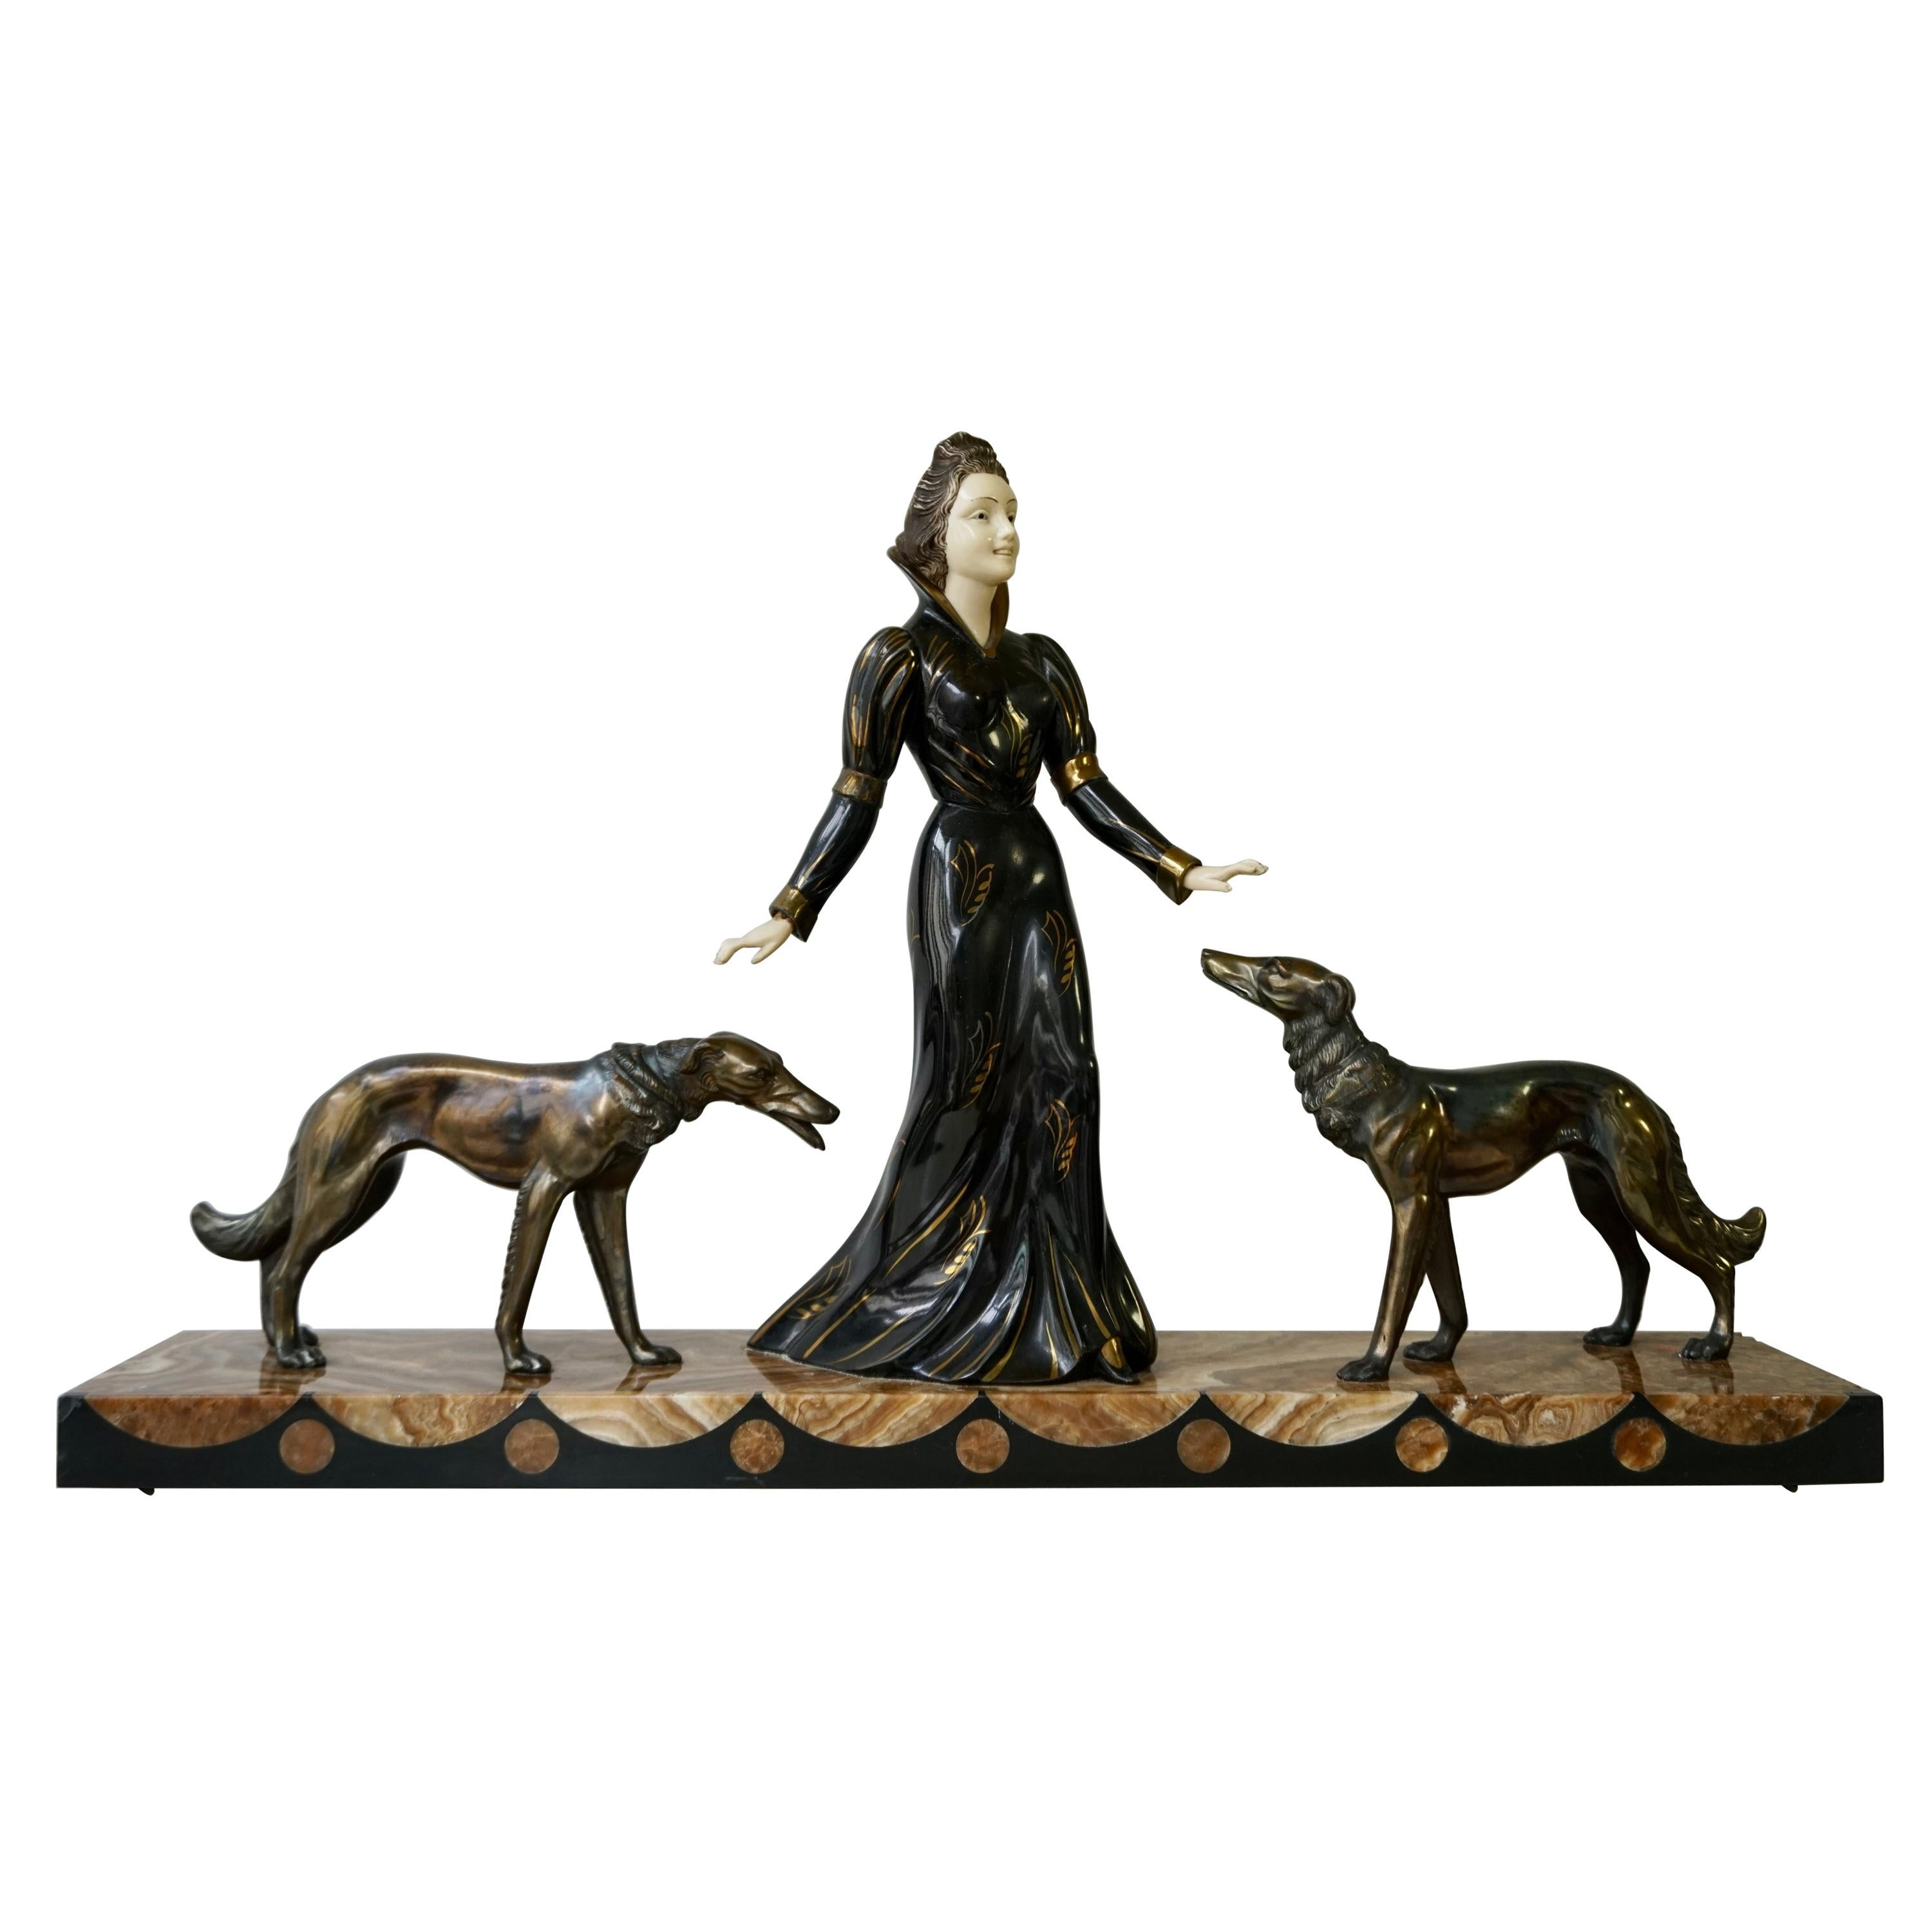 Art Deco Bronze and Marble Sculpture of a Woman with Greyhounds Signed S Melani